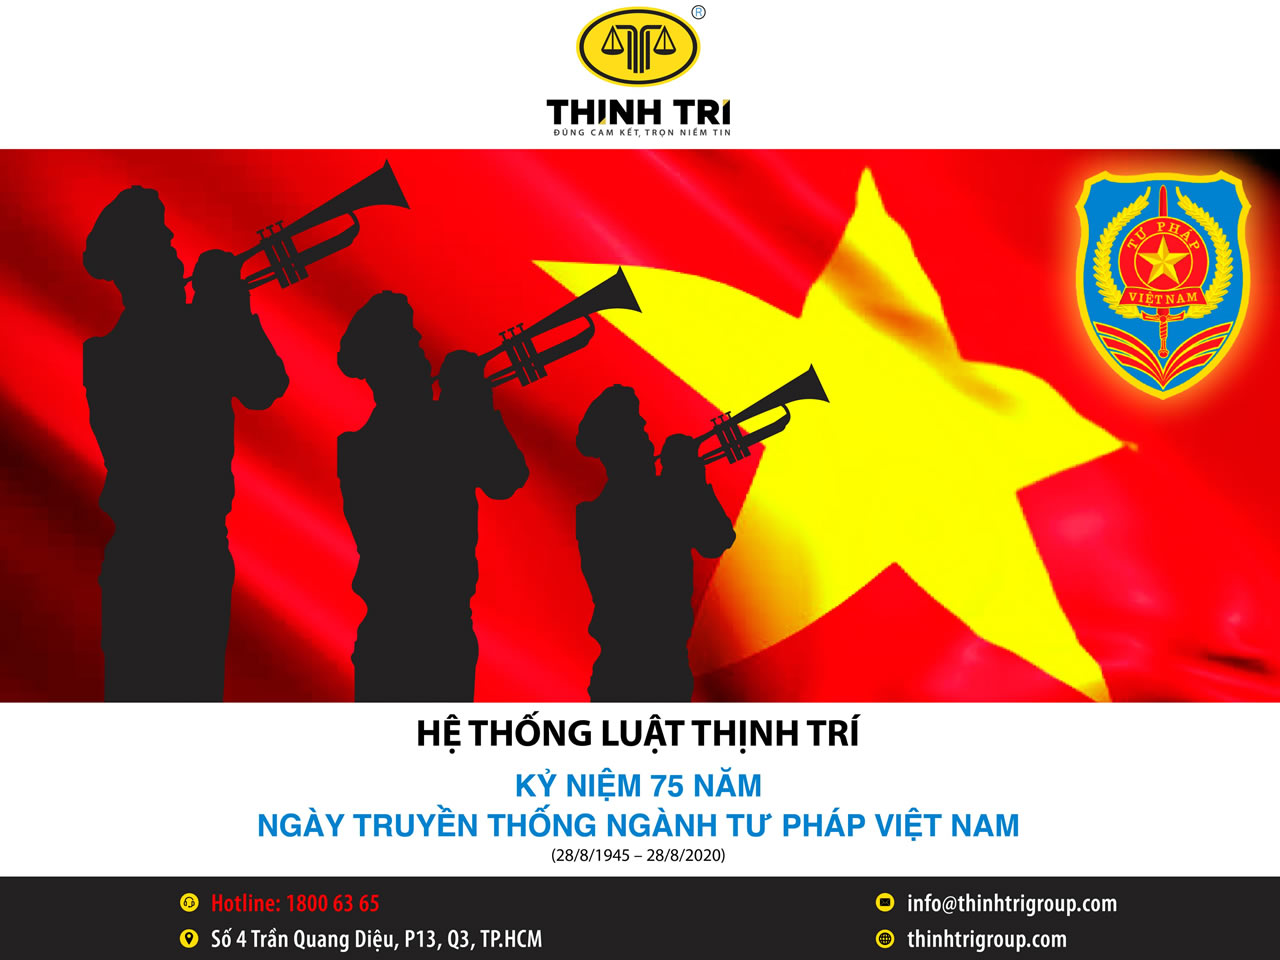 THE LEGAL SYSTEM OF THINH TRI CONCEPT 75 YEARS OF VIETNAMESE JUDICIAL TRADITION